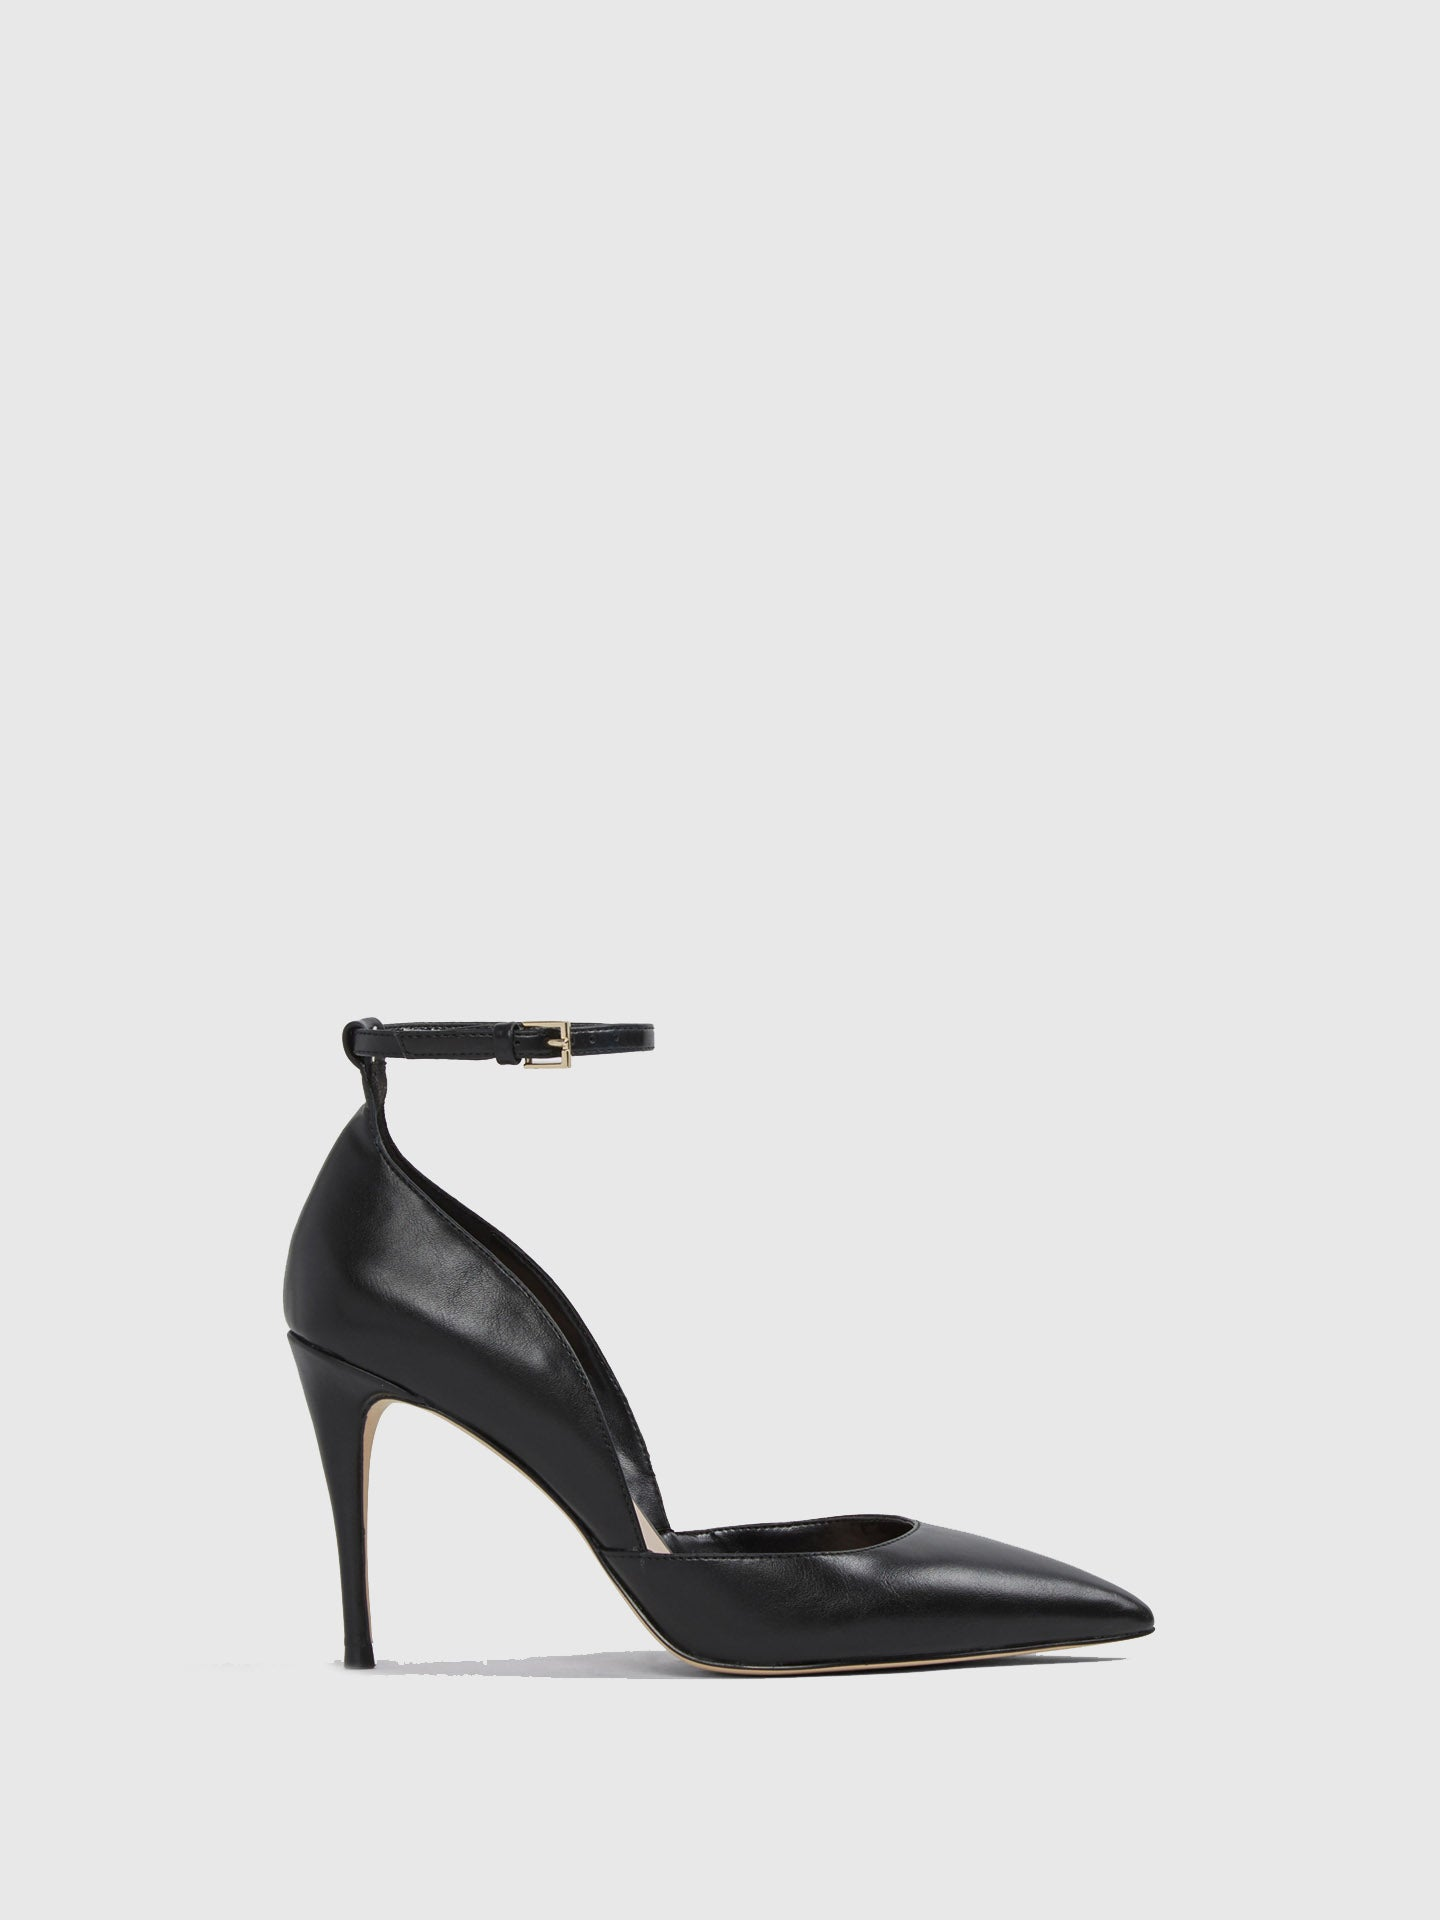 Aldo Black Ankle Strap Shoes